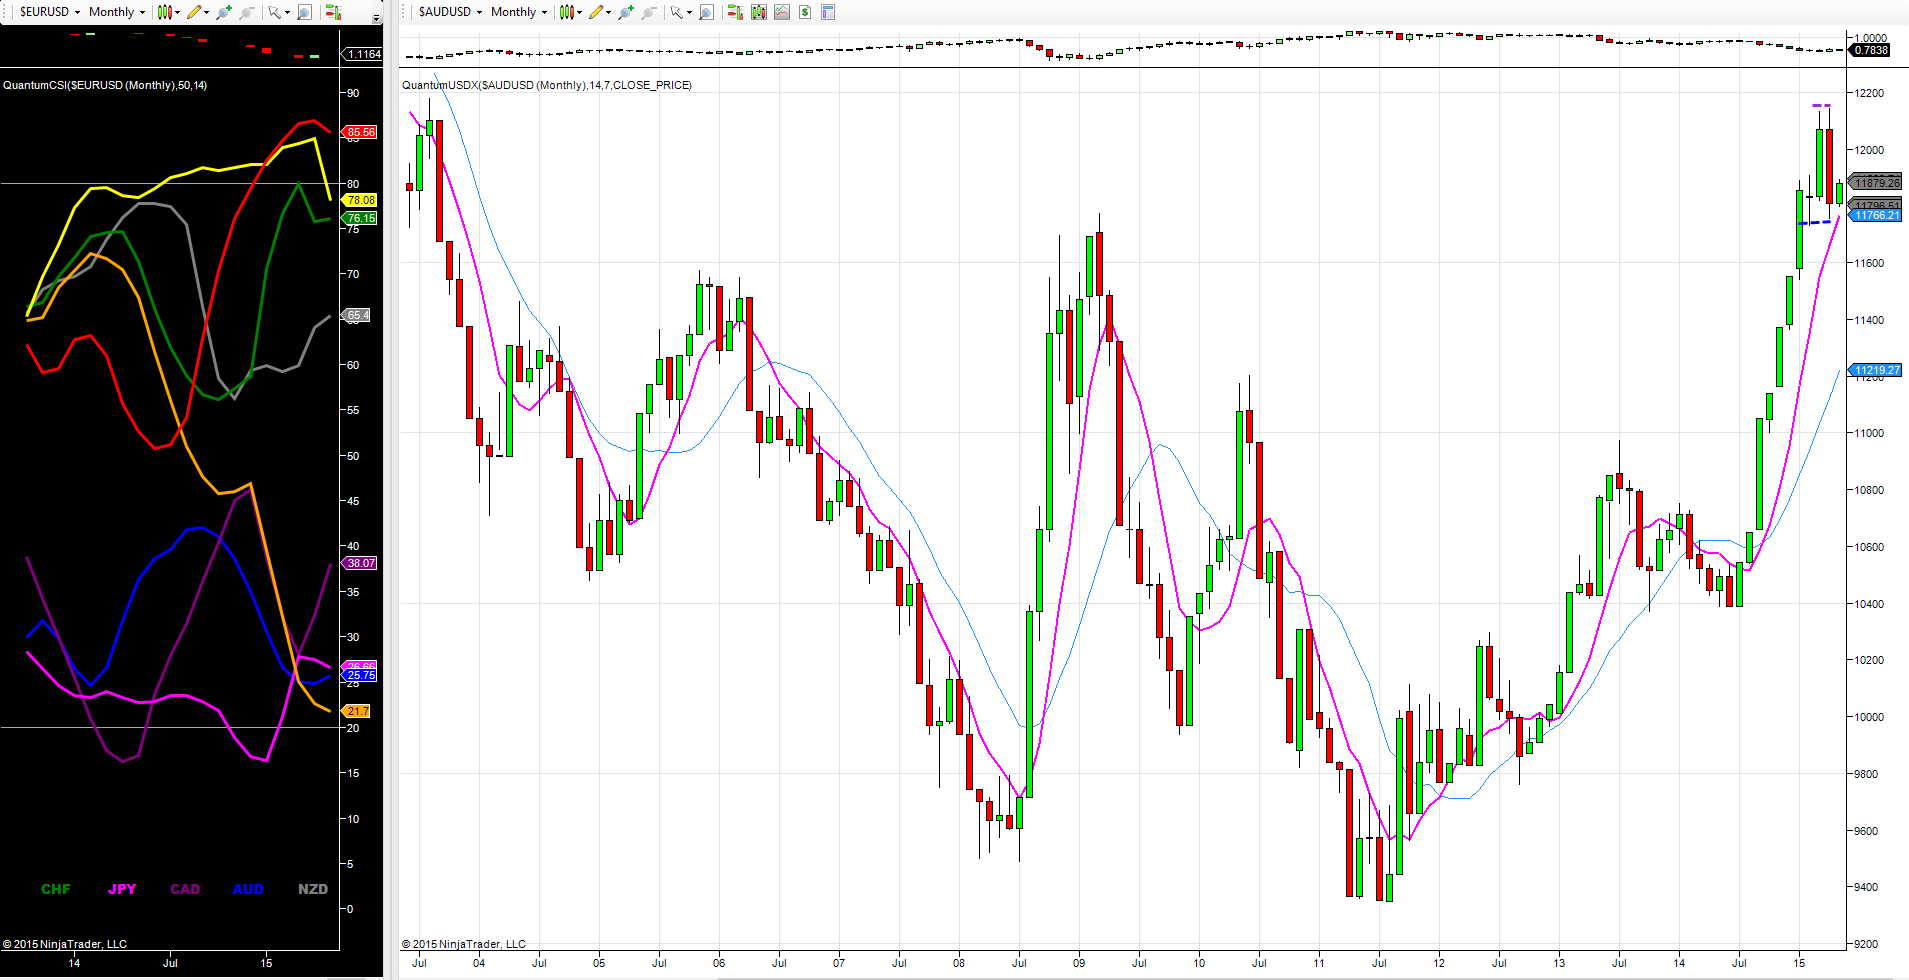 USDX - monthly chart